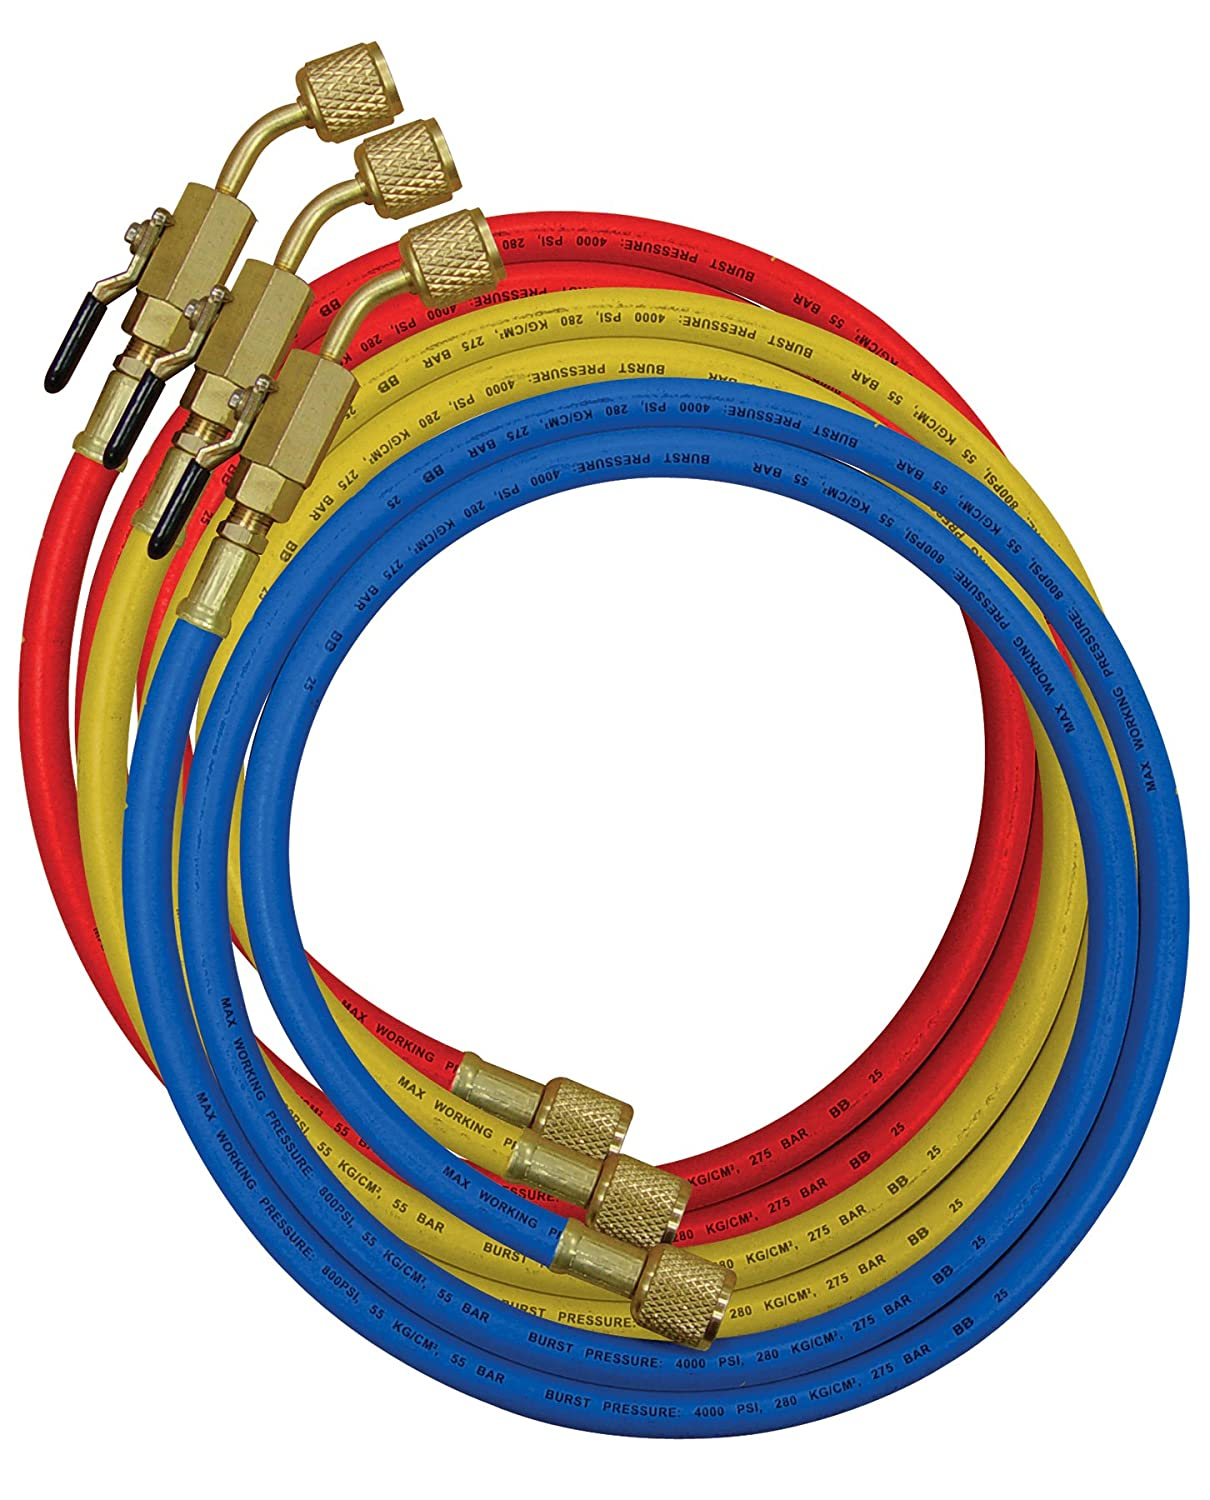 MASTERCOOL 90262-36 set of 3x90cm Standard & High Pressure Hose w/Manual Shut-Off Valve fittings (1/4 SAE)